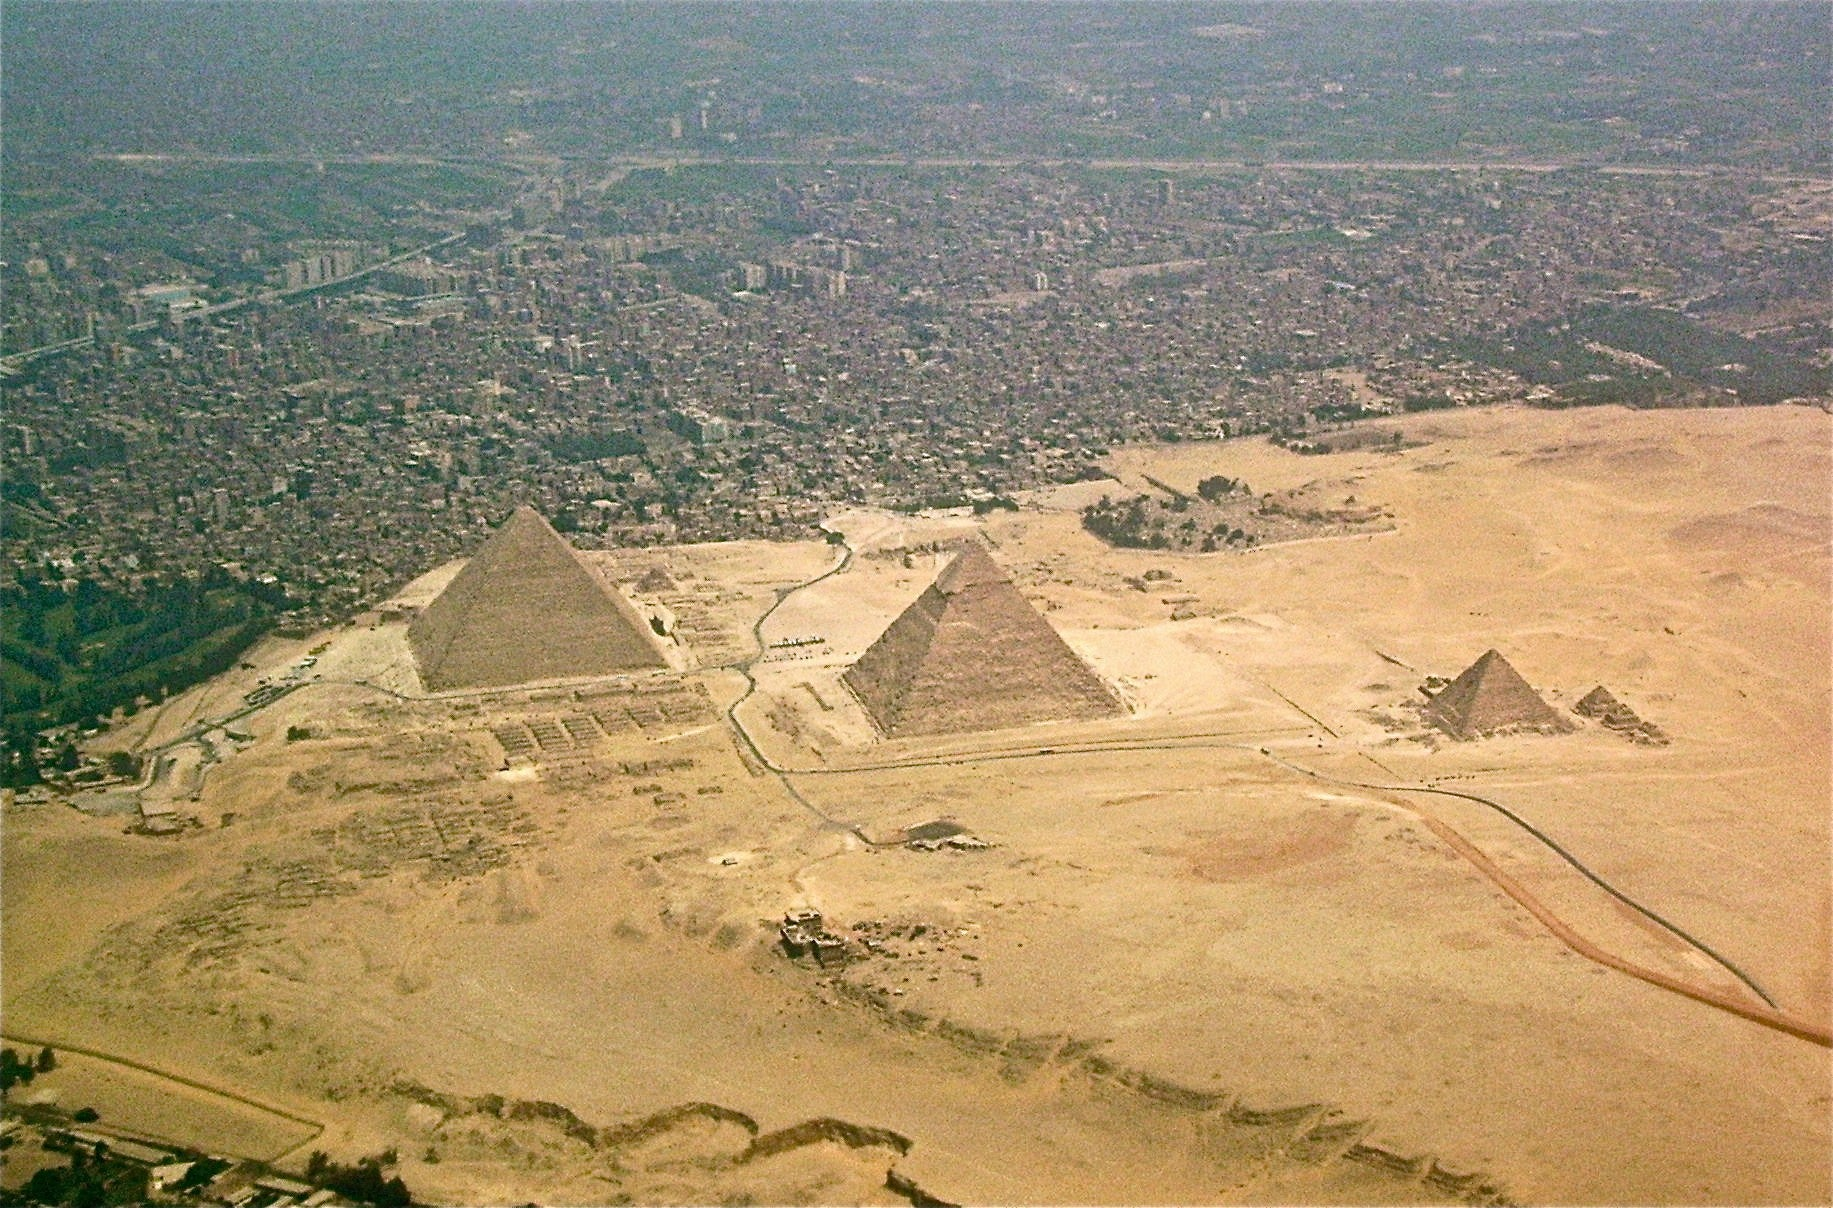 This is how the world's most iconic monuments look from far away